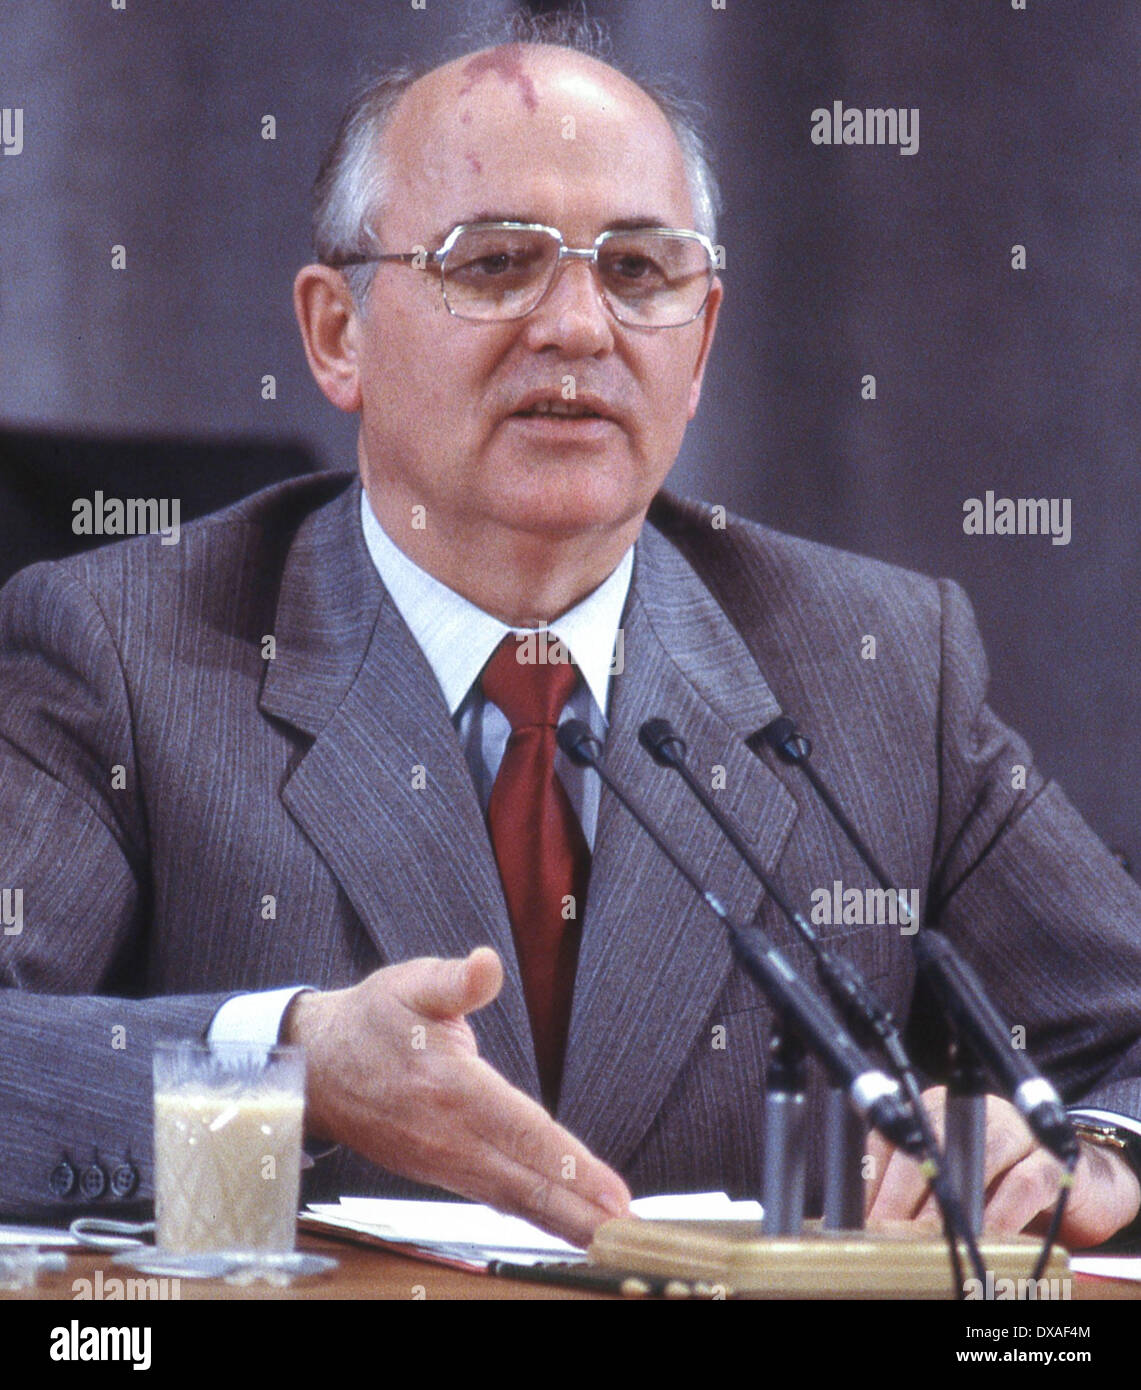 June 3, 1988 - Moscow, Russia - MIKHAIL GORBACHEV, General Secretary of the Communist Party of the Soviet Union, during a press conference in Moscow after the summit meeting with U.S. President RONALD REAGAN that finalized the Intermediate-Range Nuclear Forces Treaty. (Credit Image: © Arnold Drapkin/ZUMAPRESS.com) - Stock Image